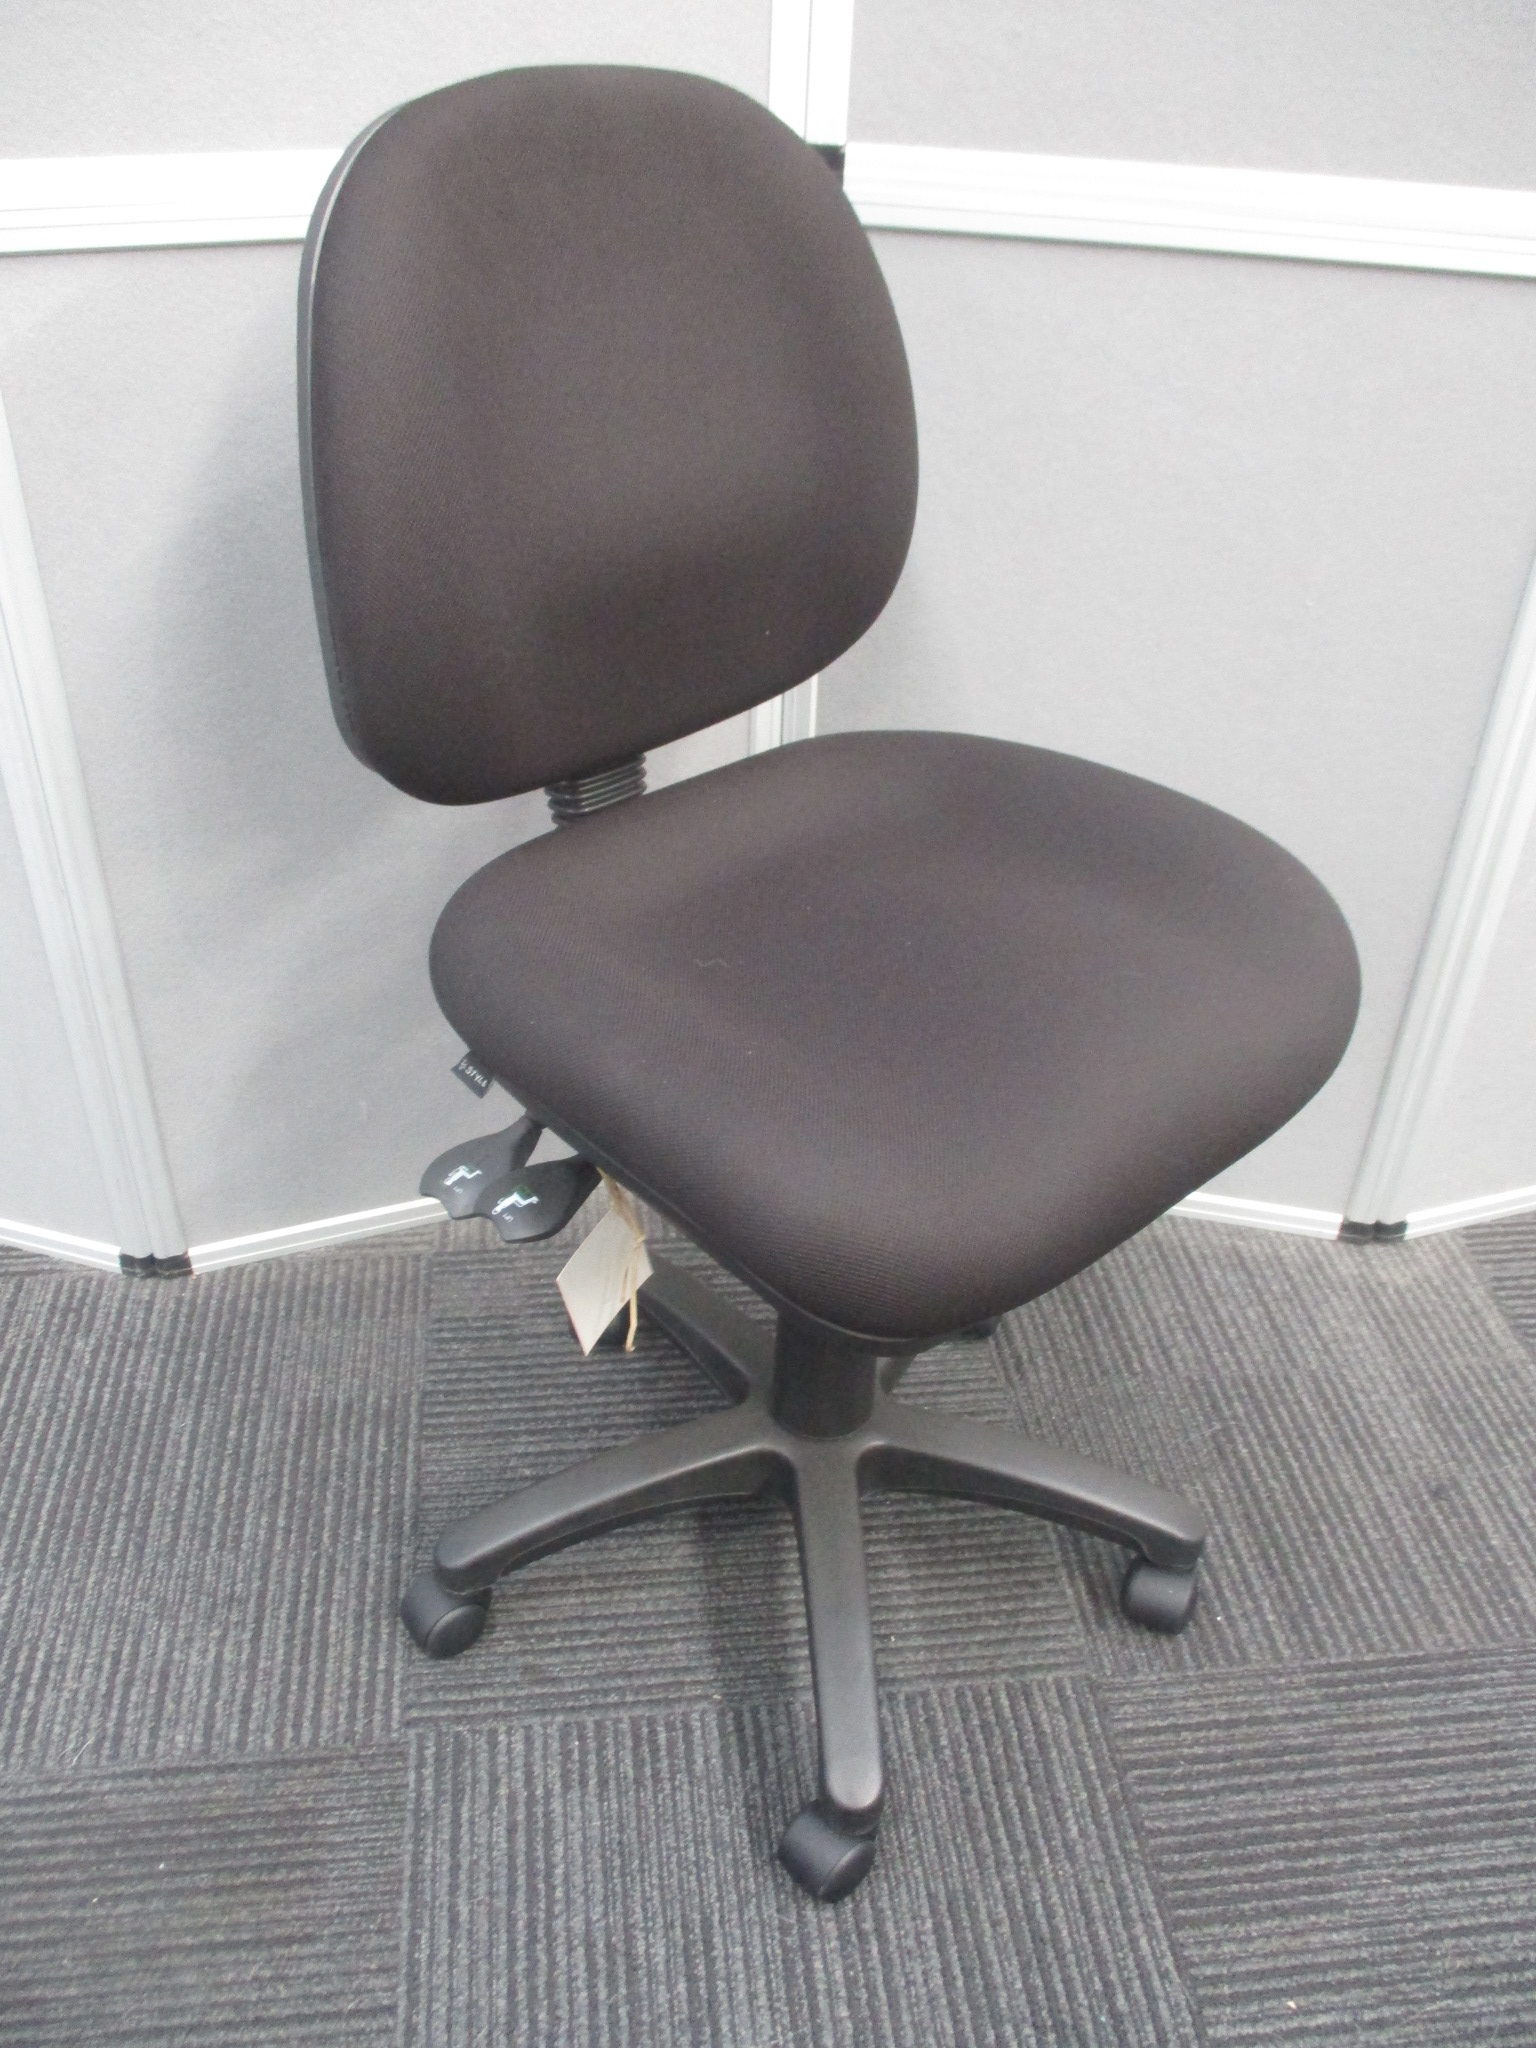 New P350 LB Chairs $200